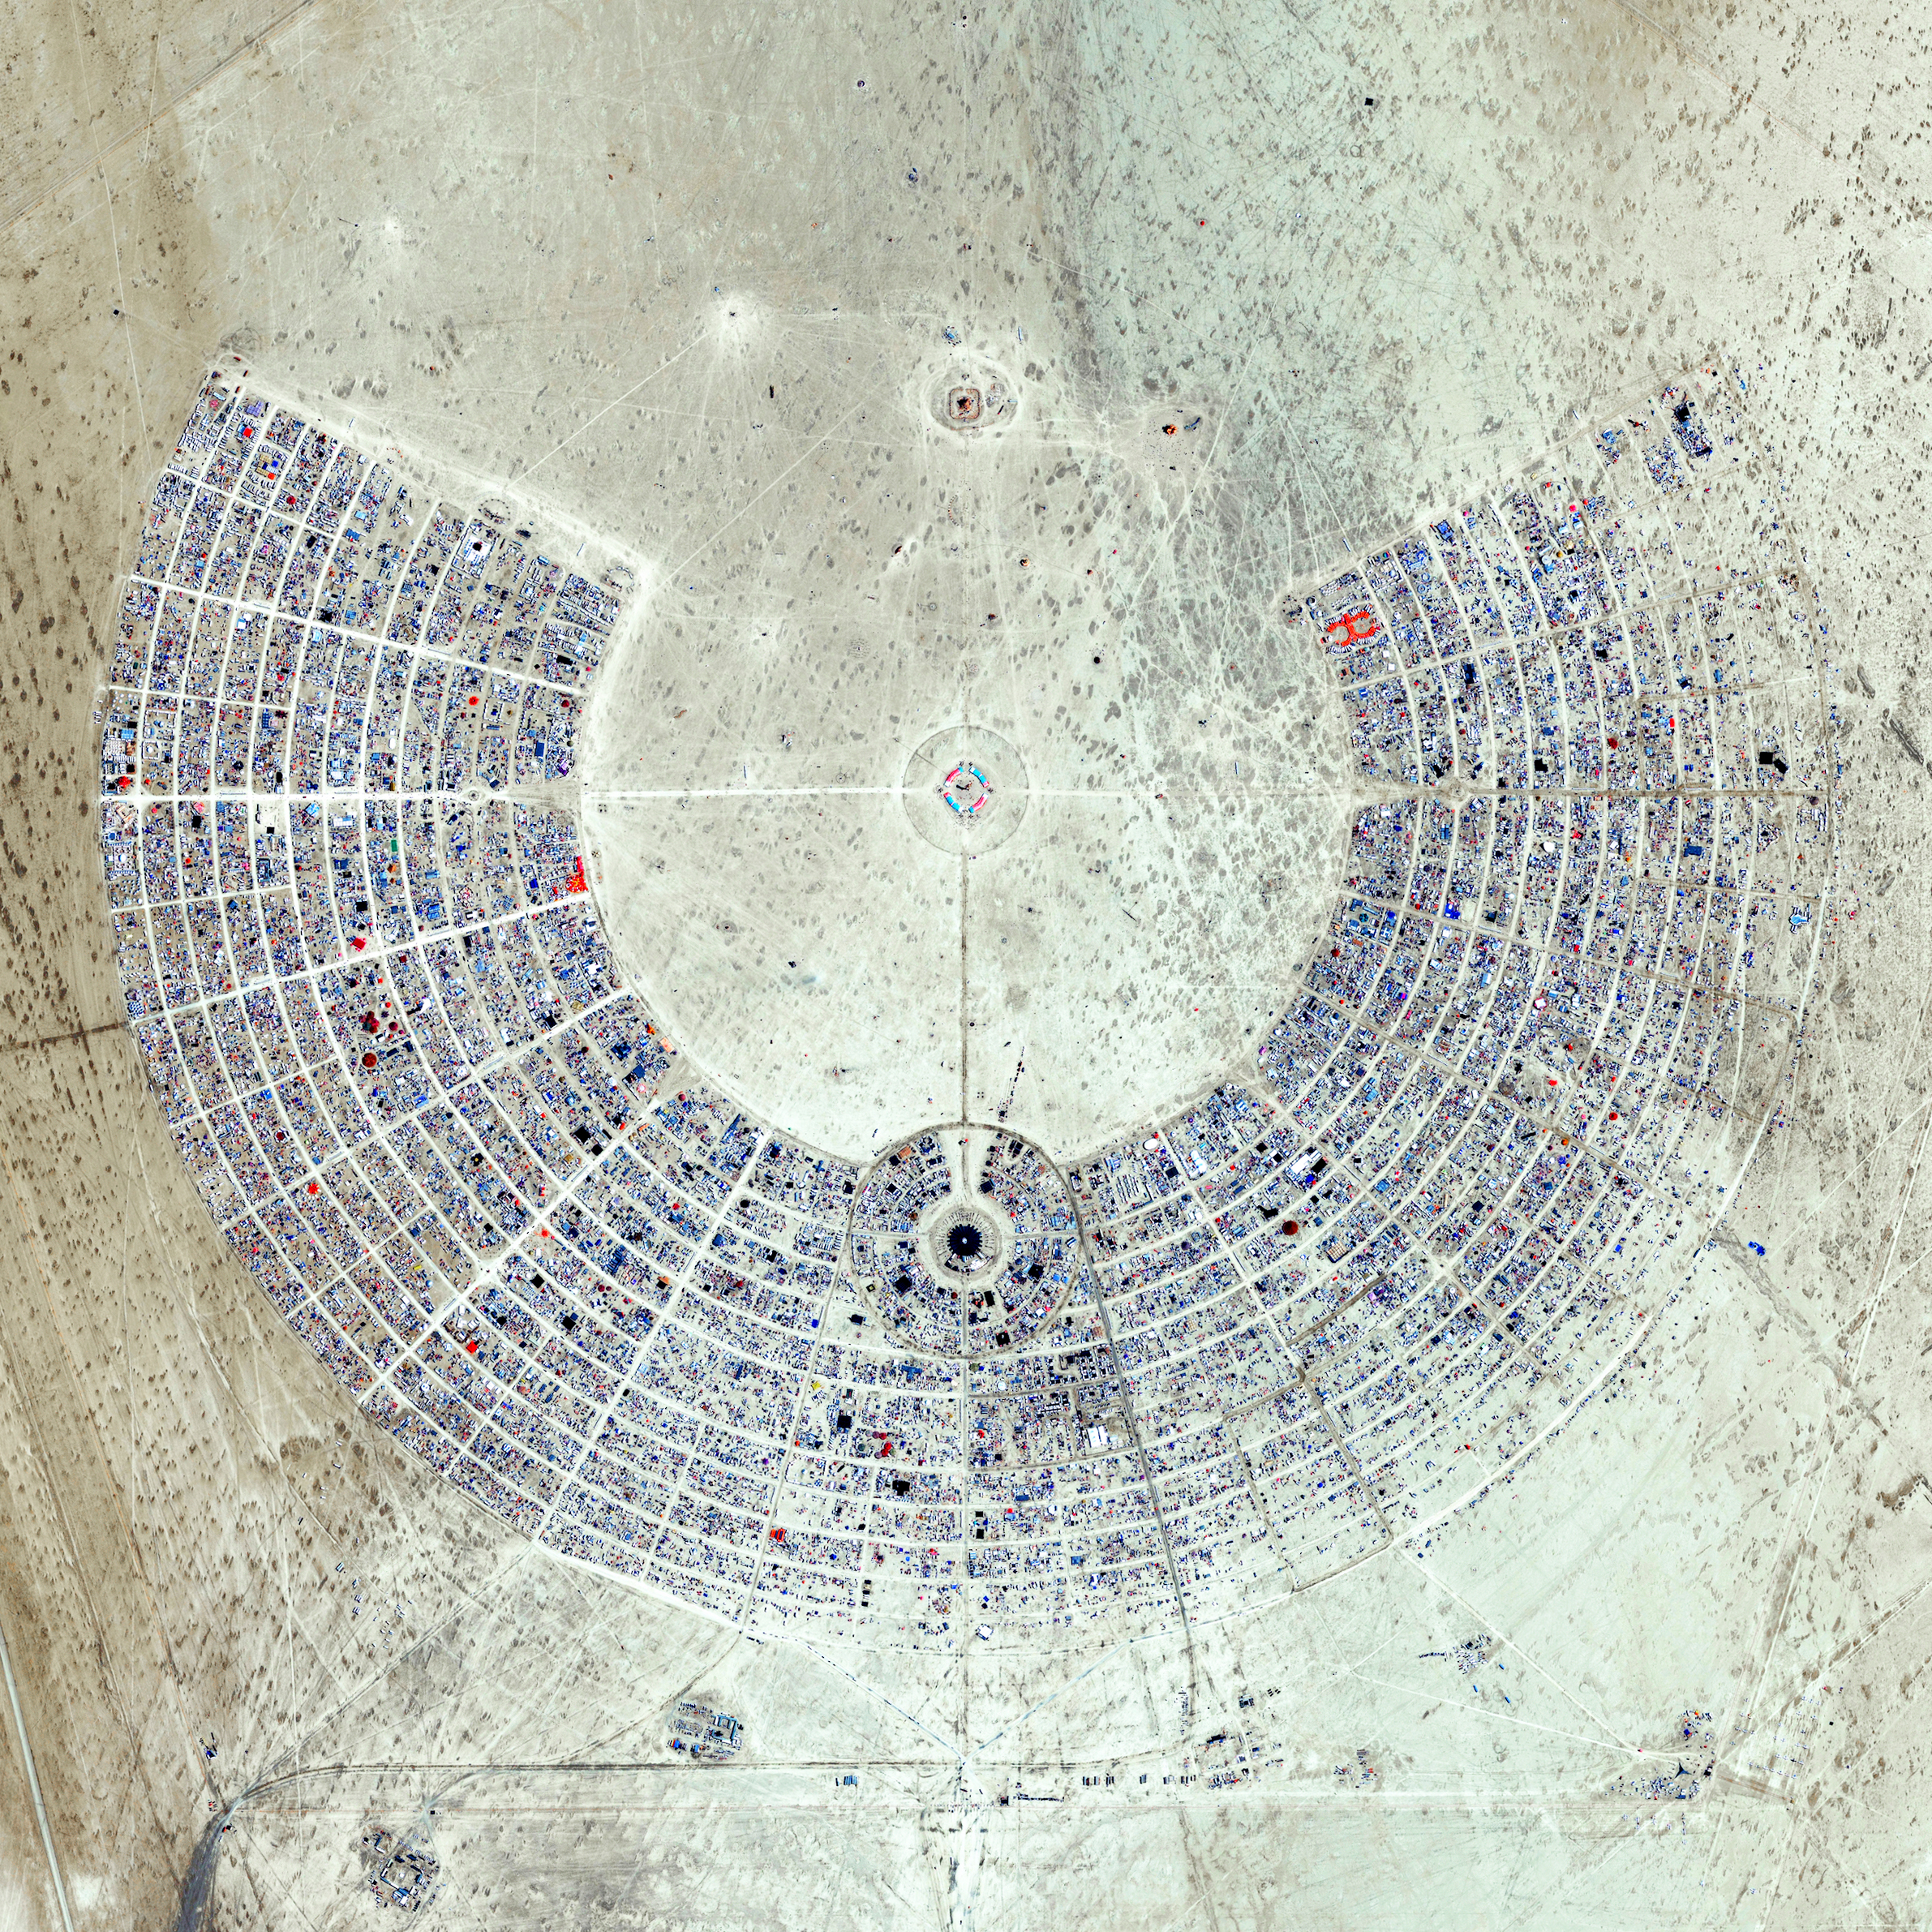 We just passed 200K FOLLOWERS on  Instagram and we're doing some PRINT GIVEAWAYS this week to celebrate! To enter the first  contest , simply TAG FOUR (4) FRIENDS in the comments of the post. In 72 hours, we'll announce a winner who will receive a print with this amazing Overview of Burning Man! This annual event is held in the Black Rock Desert of Nevada, USA and draws more than 65,000 participants. If you want to learn more about this specific print, click  here !